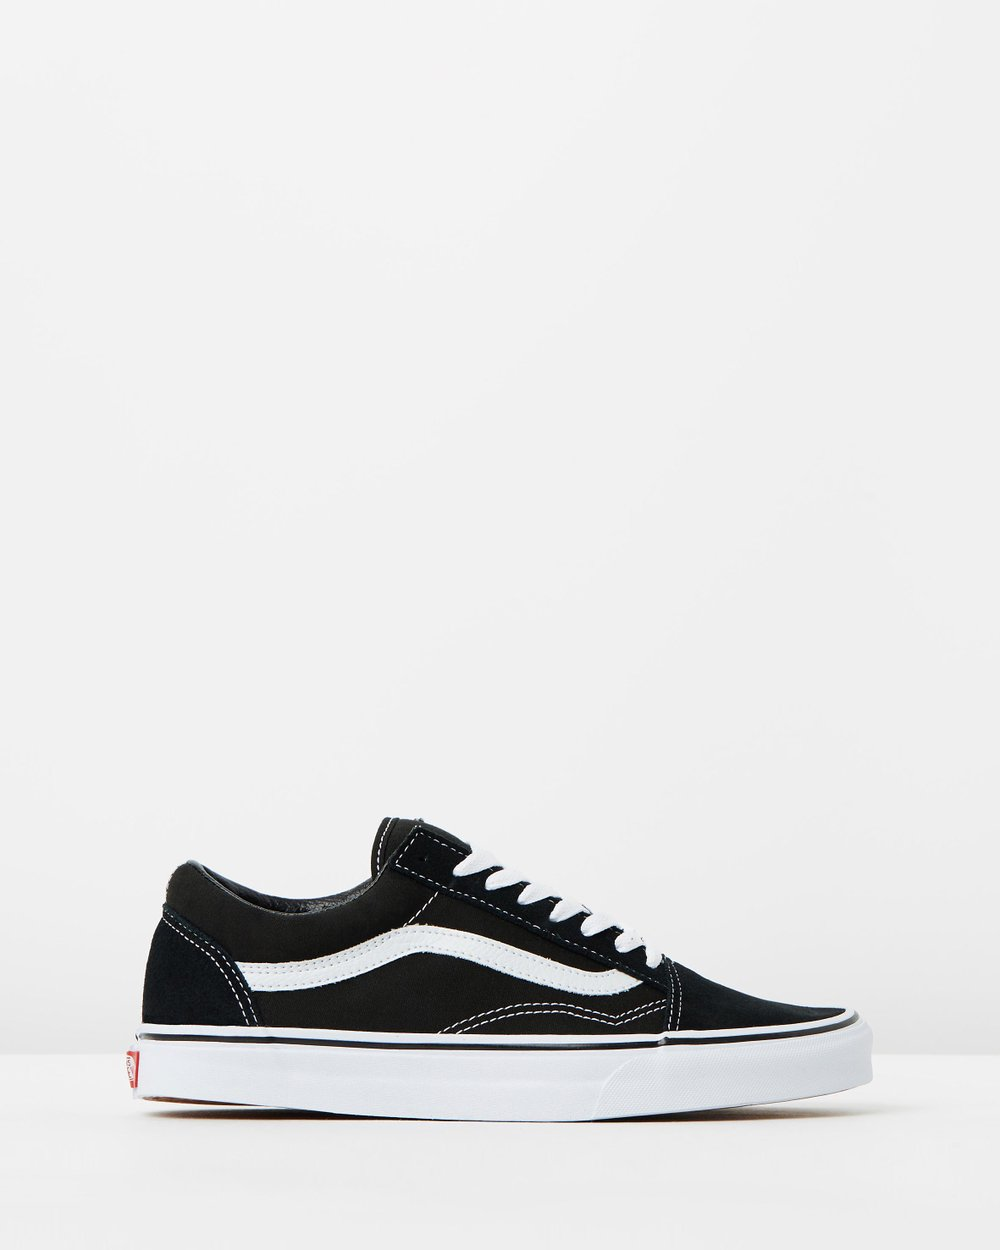 673a649477 Old Skool by Vans Online